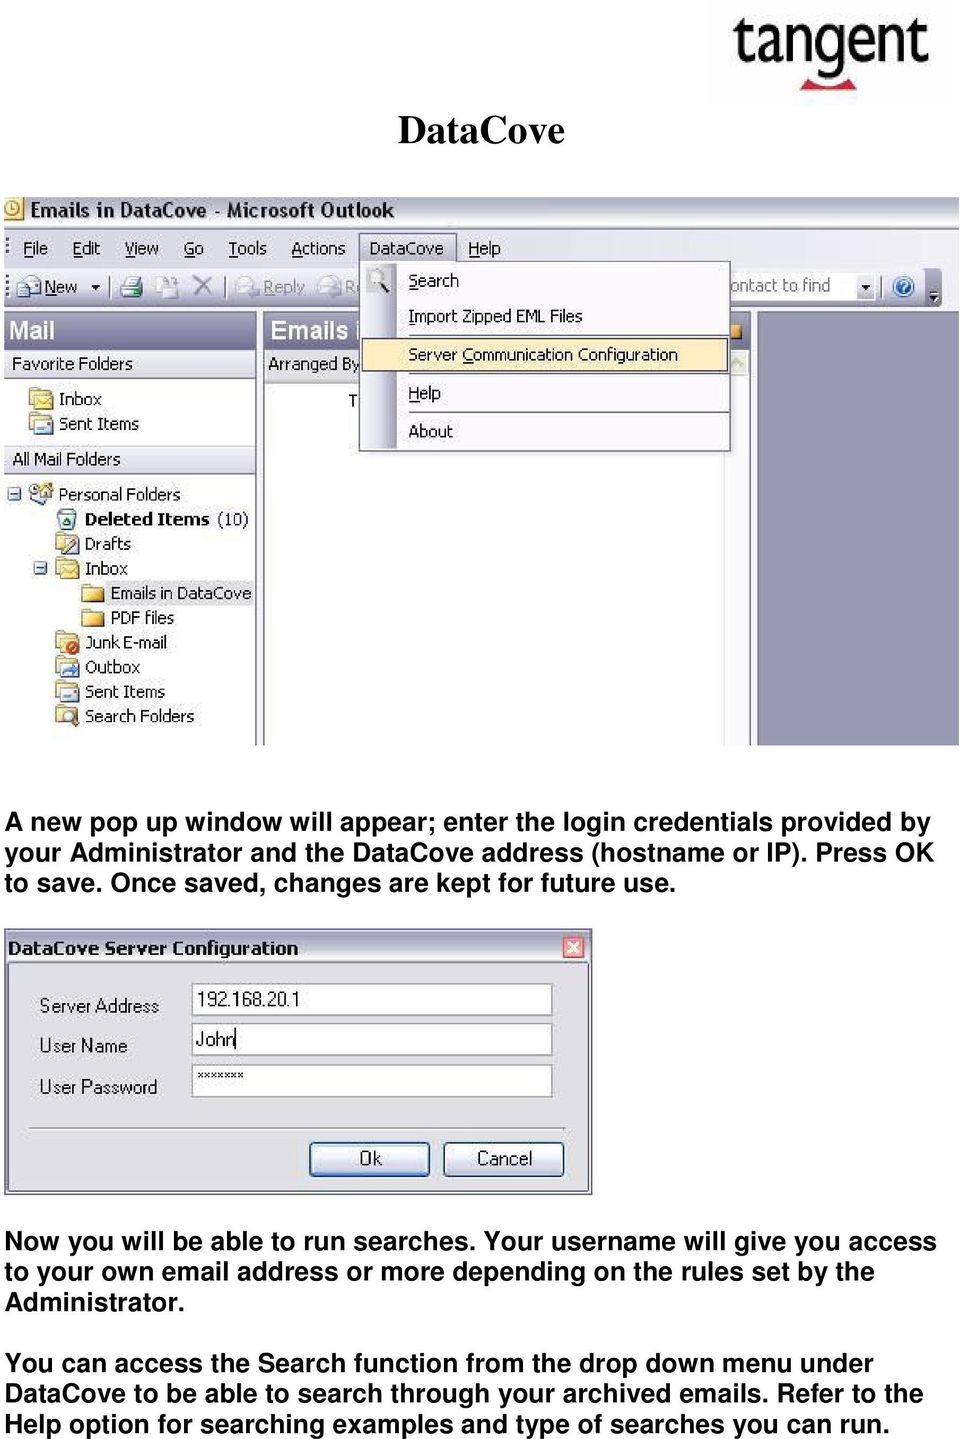 Your username will give you access to your own email address or more depending on the rules set by the Administrator.